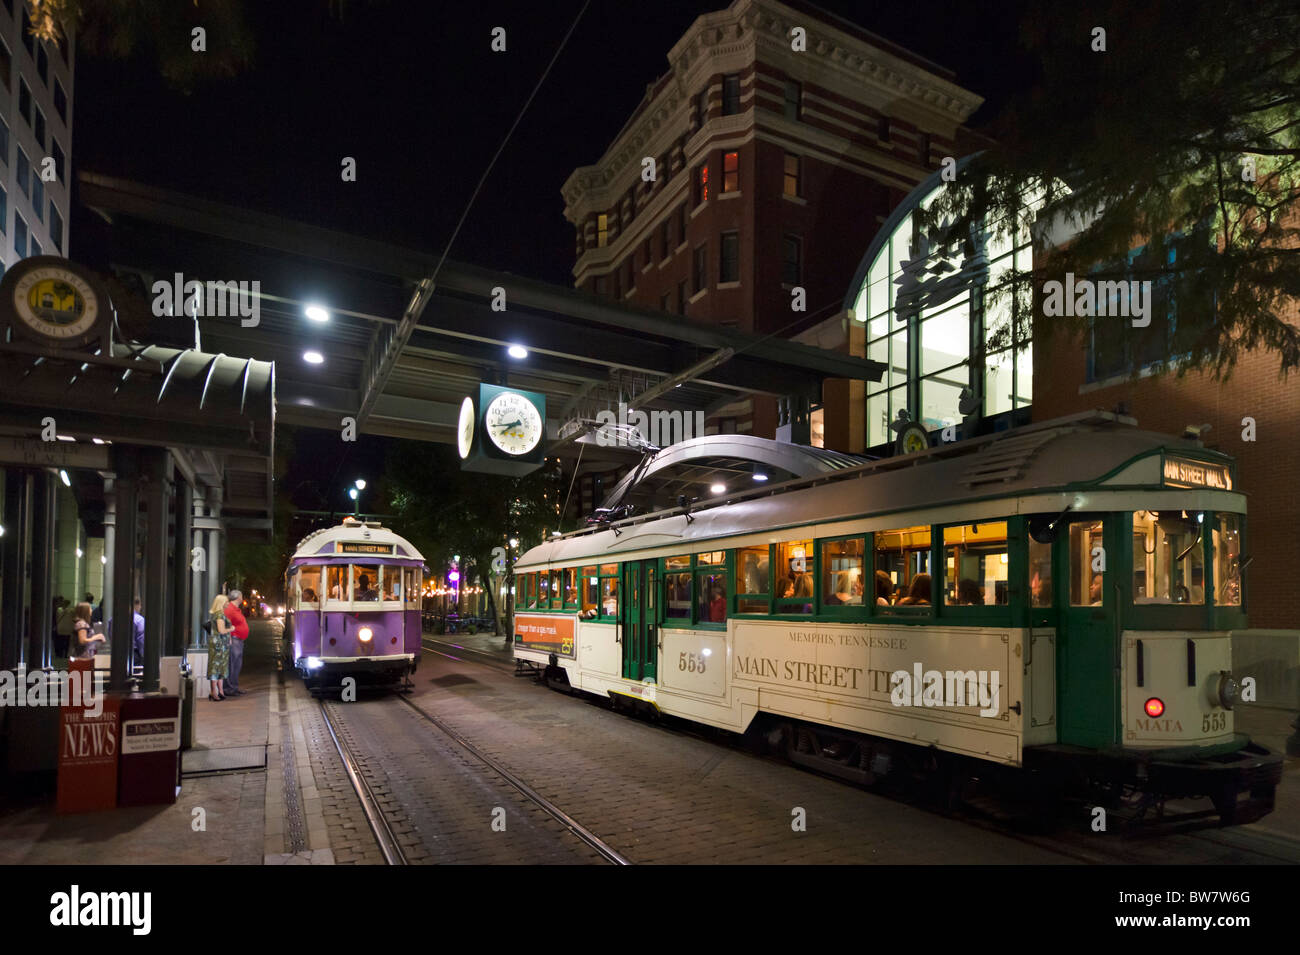 Main Street trolleys at night in Peabody Place, Main Street, Memphis, Tennessee, USA - Stock Image